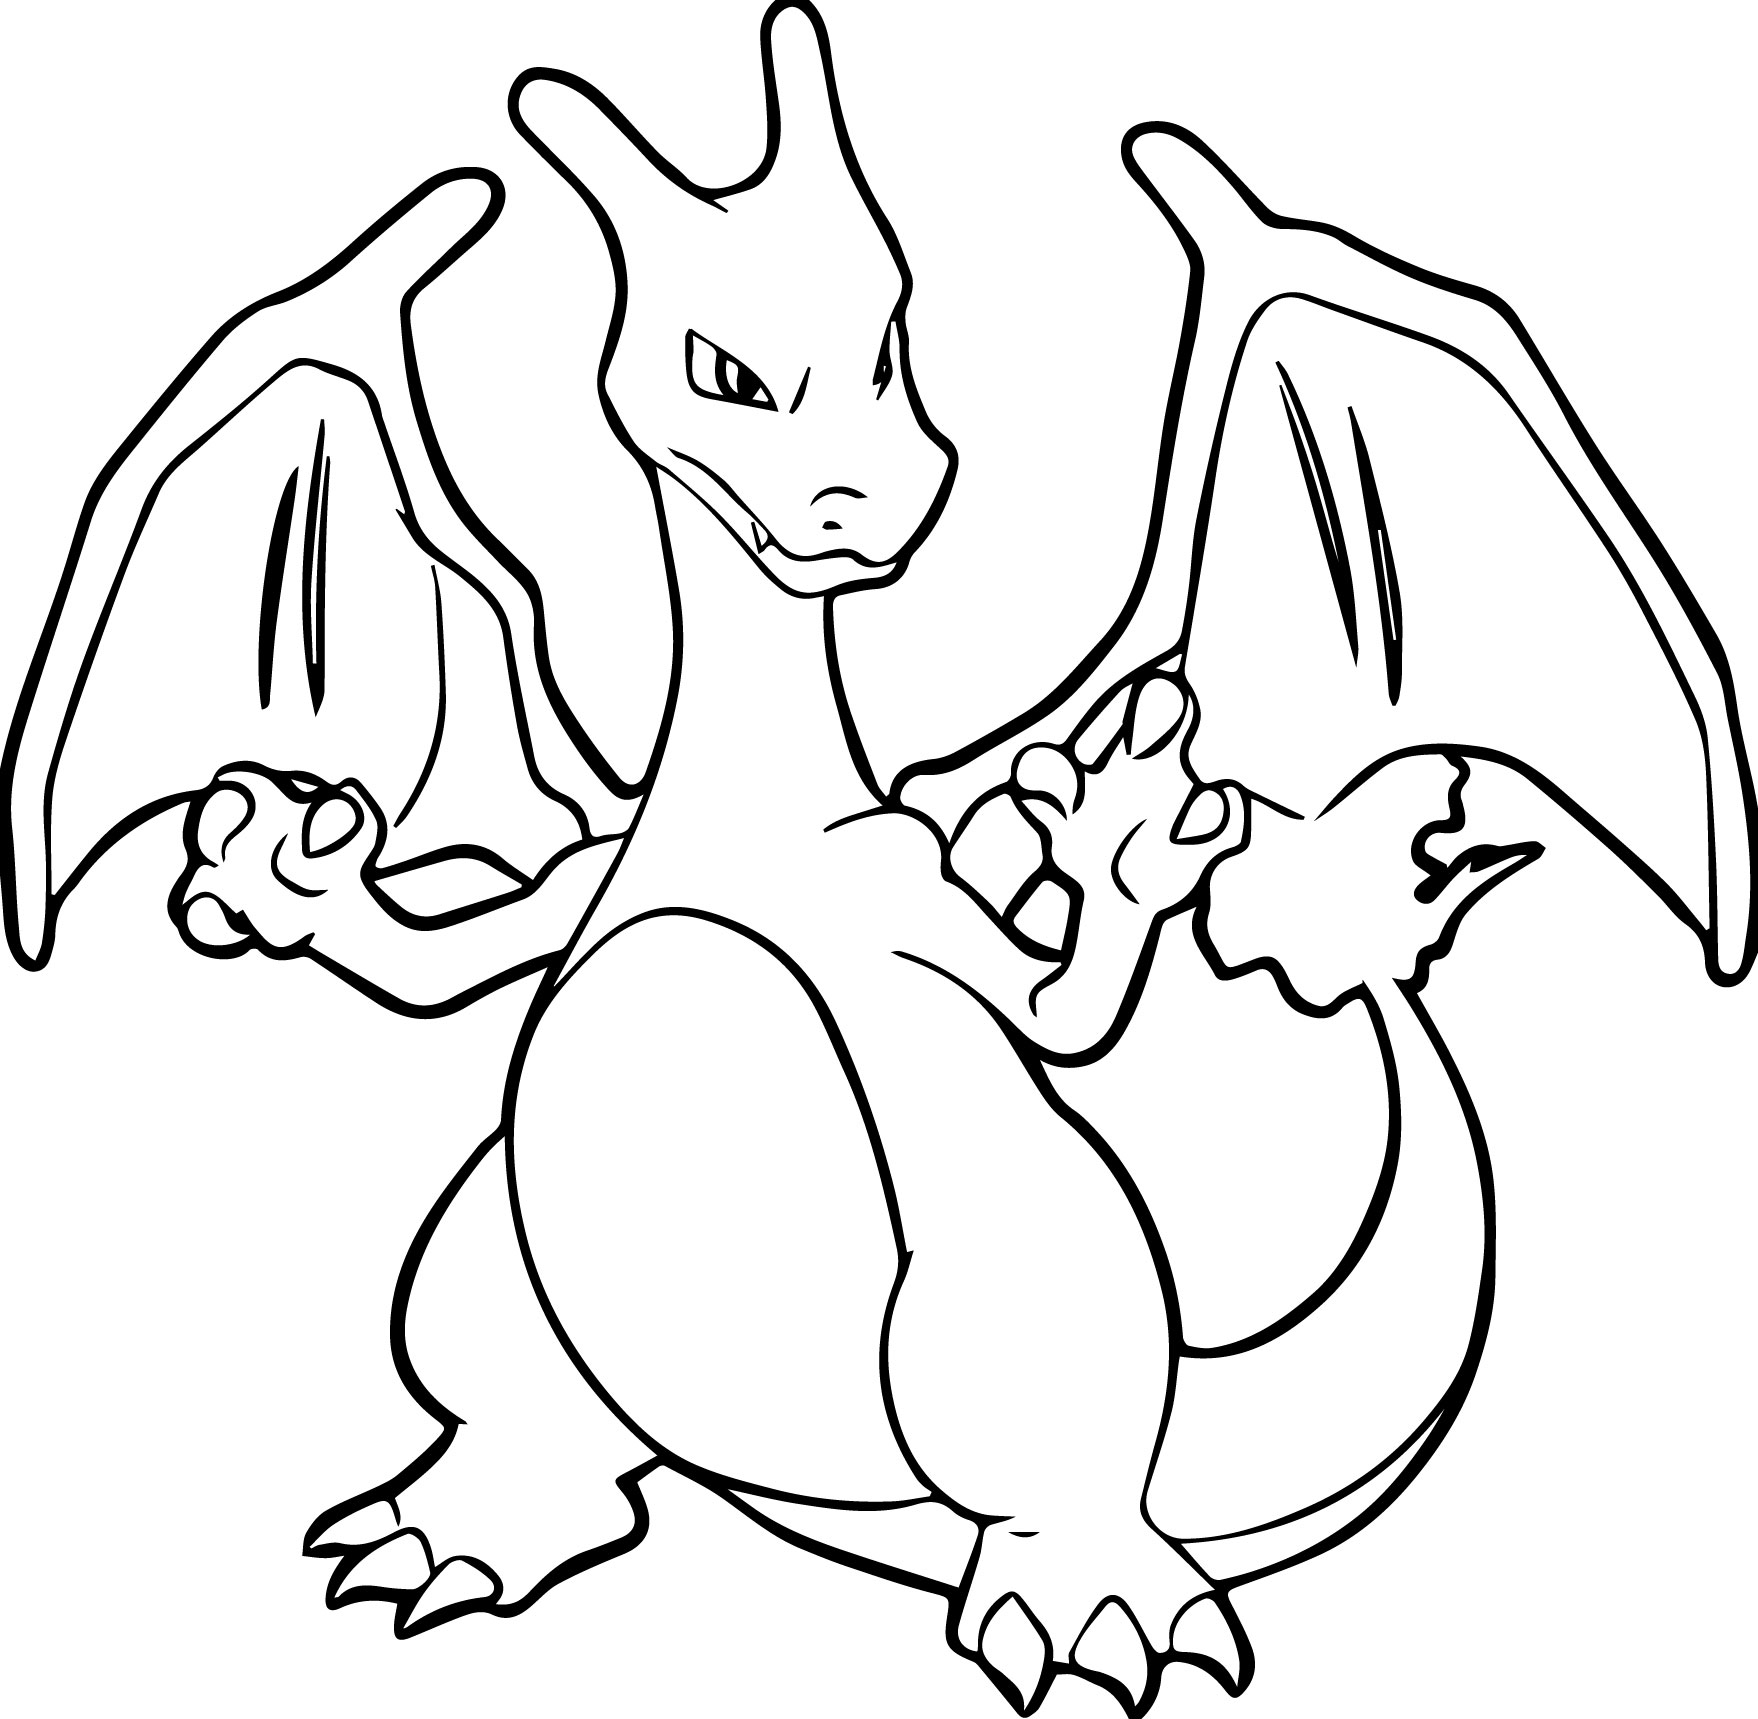 Charizard coloring pages to print